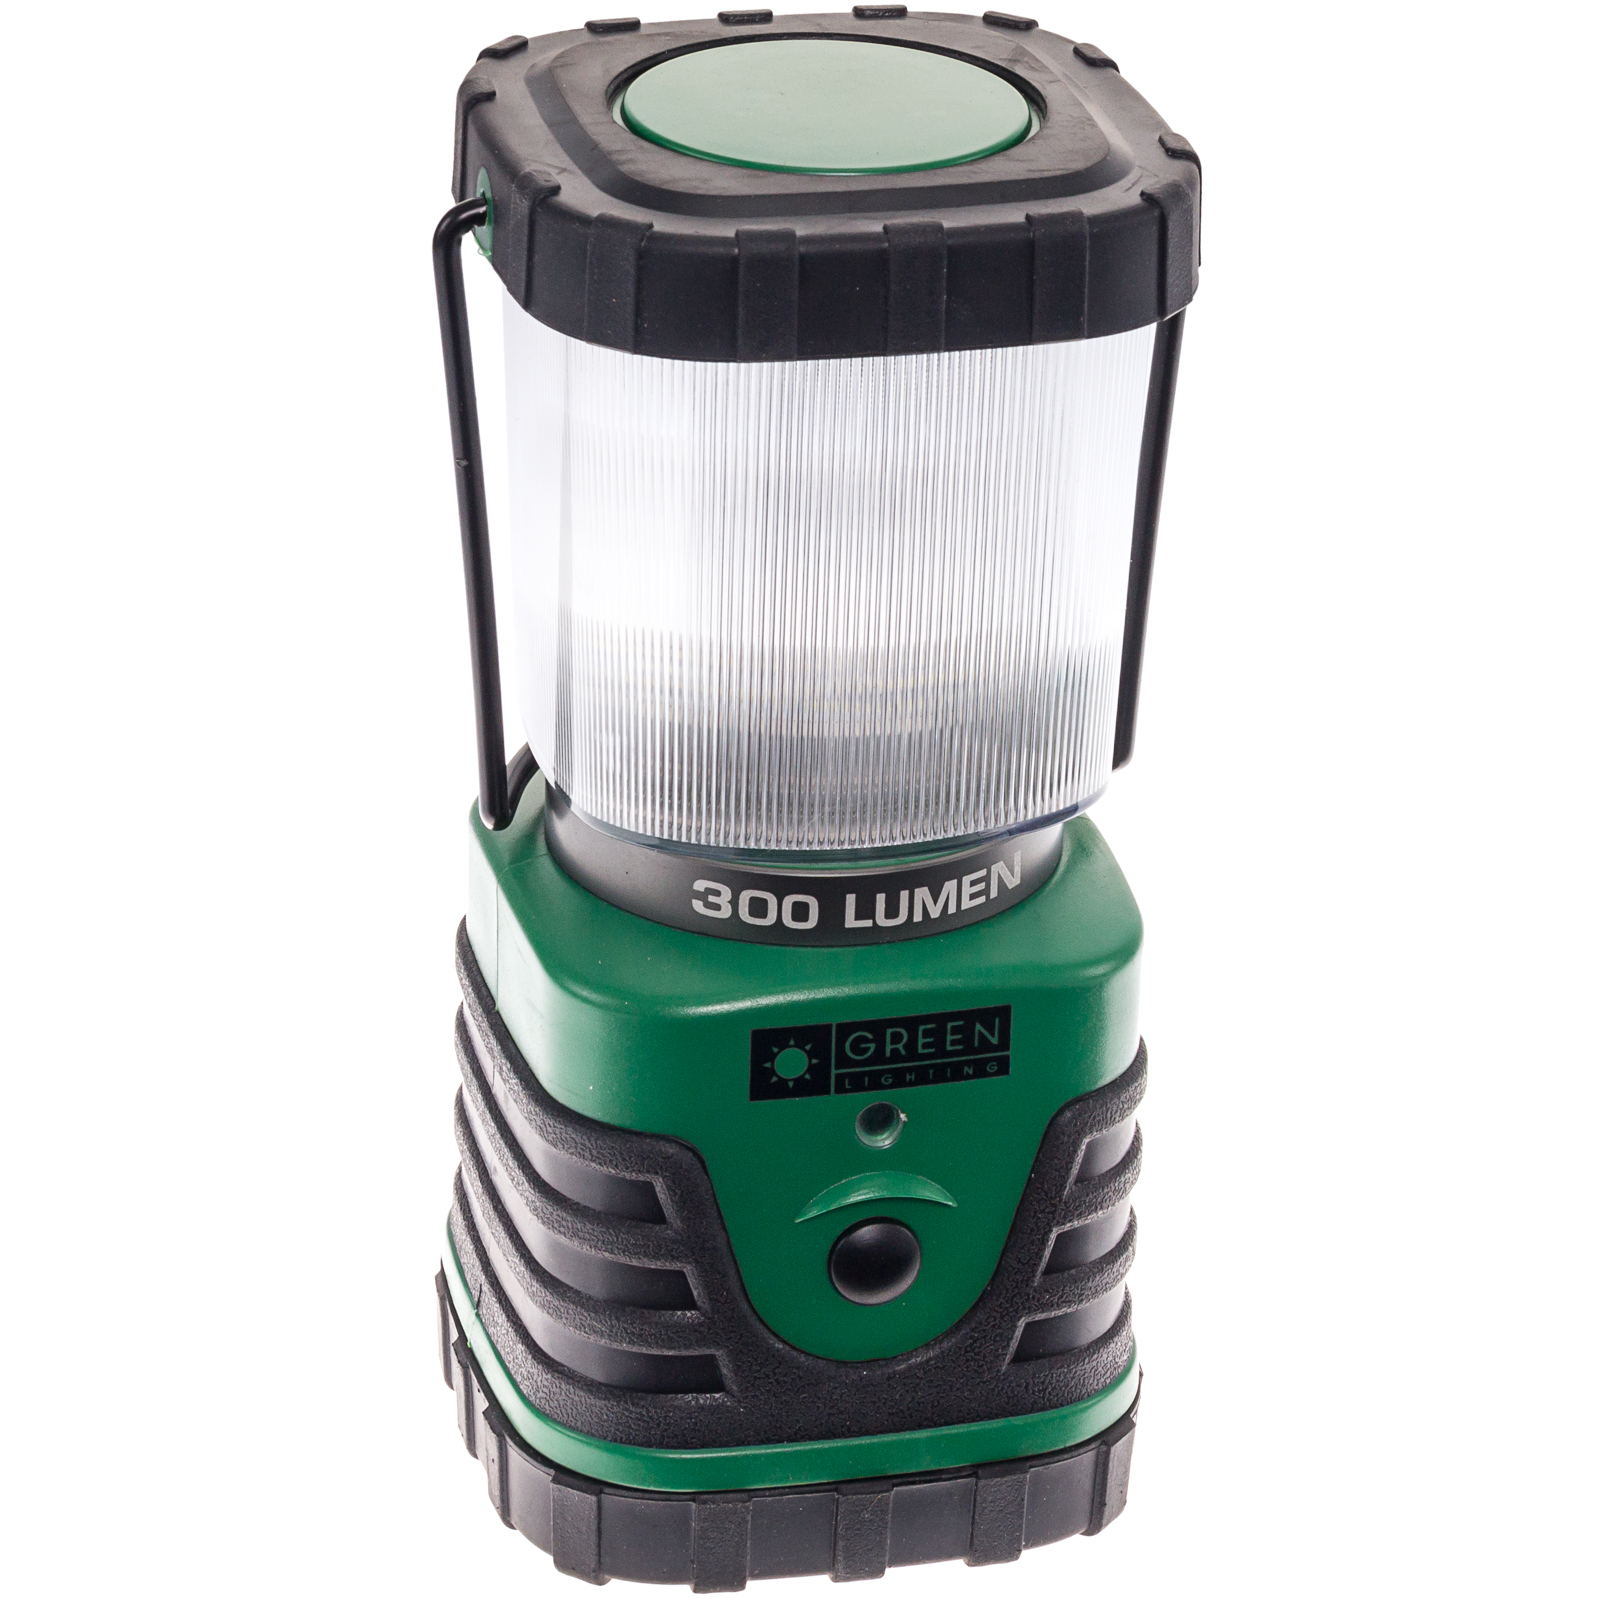 GREENLIGHTING NEW Green 300 Lumens Muli-Functional LED Camping Emergency Lantern